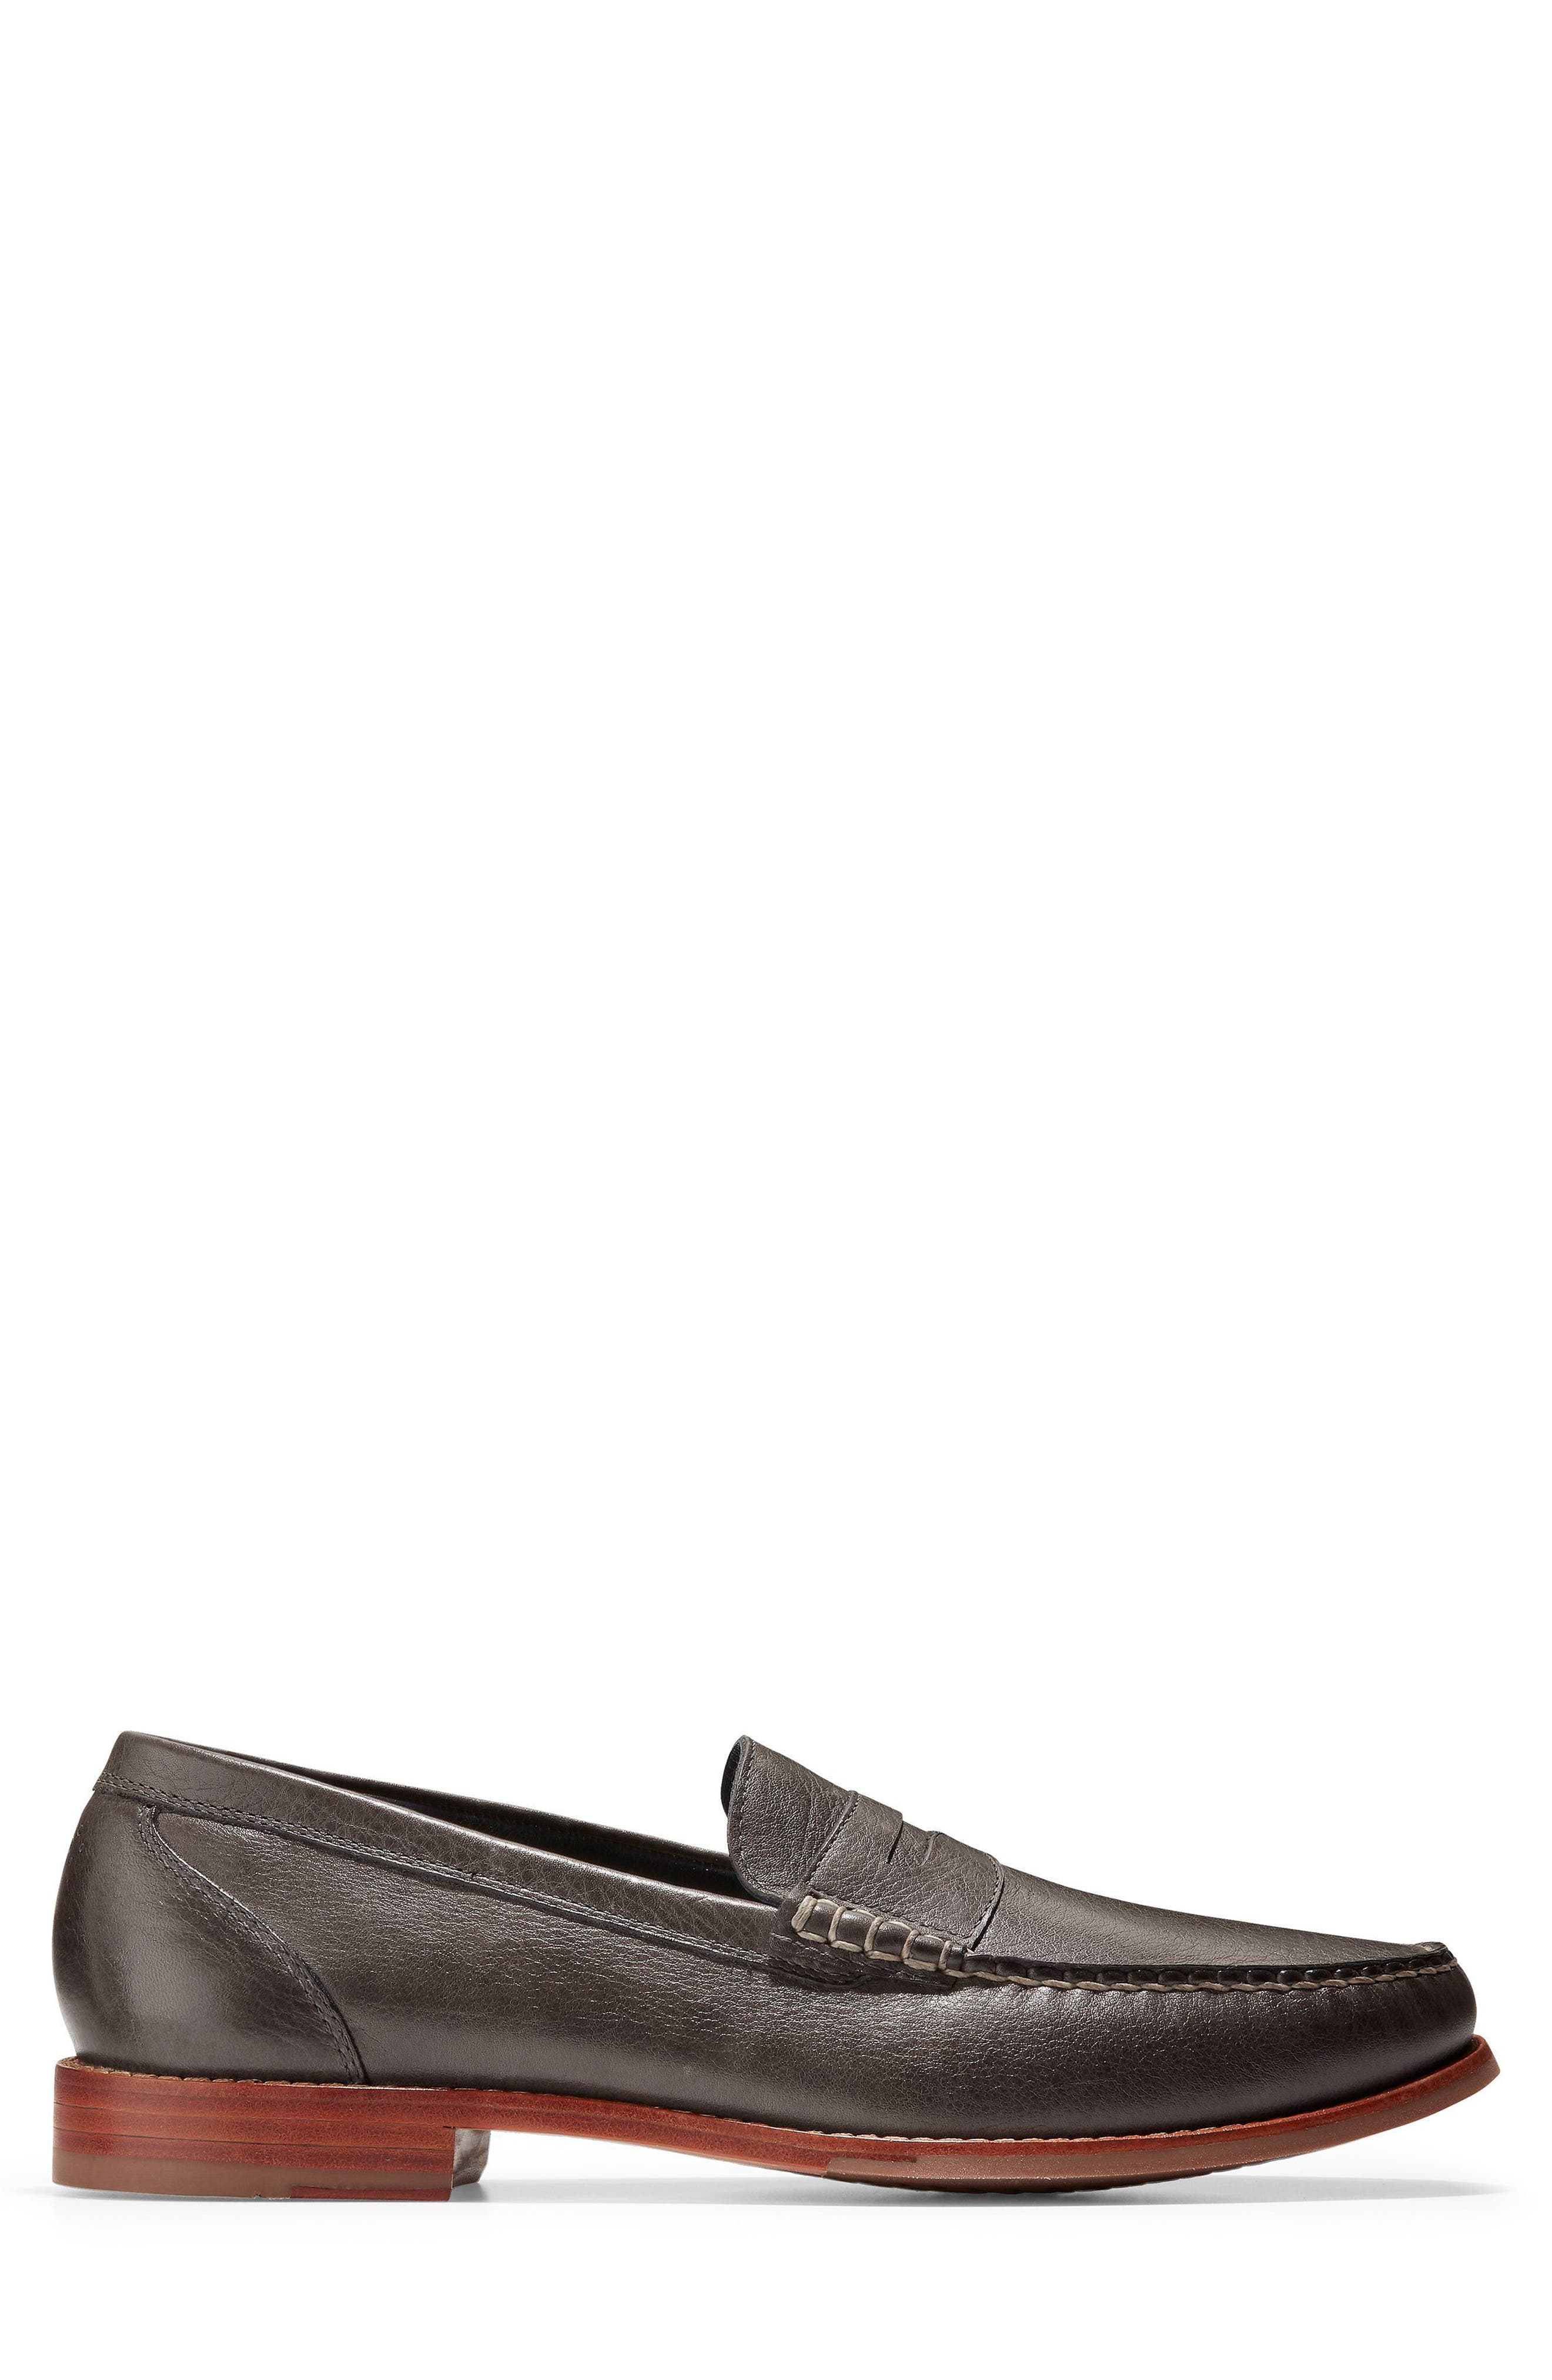 'Pinch Grand' Penny Loafer,                             Alternate thumbnail 3, color,                             021